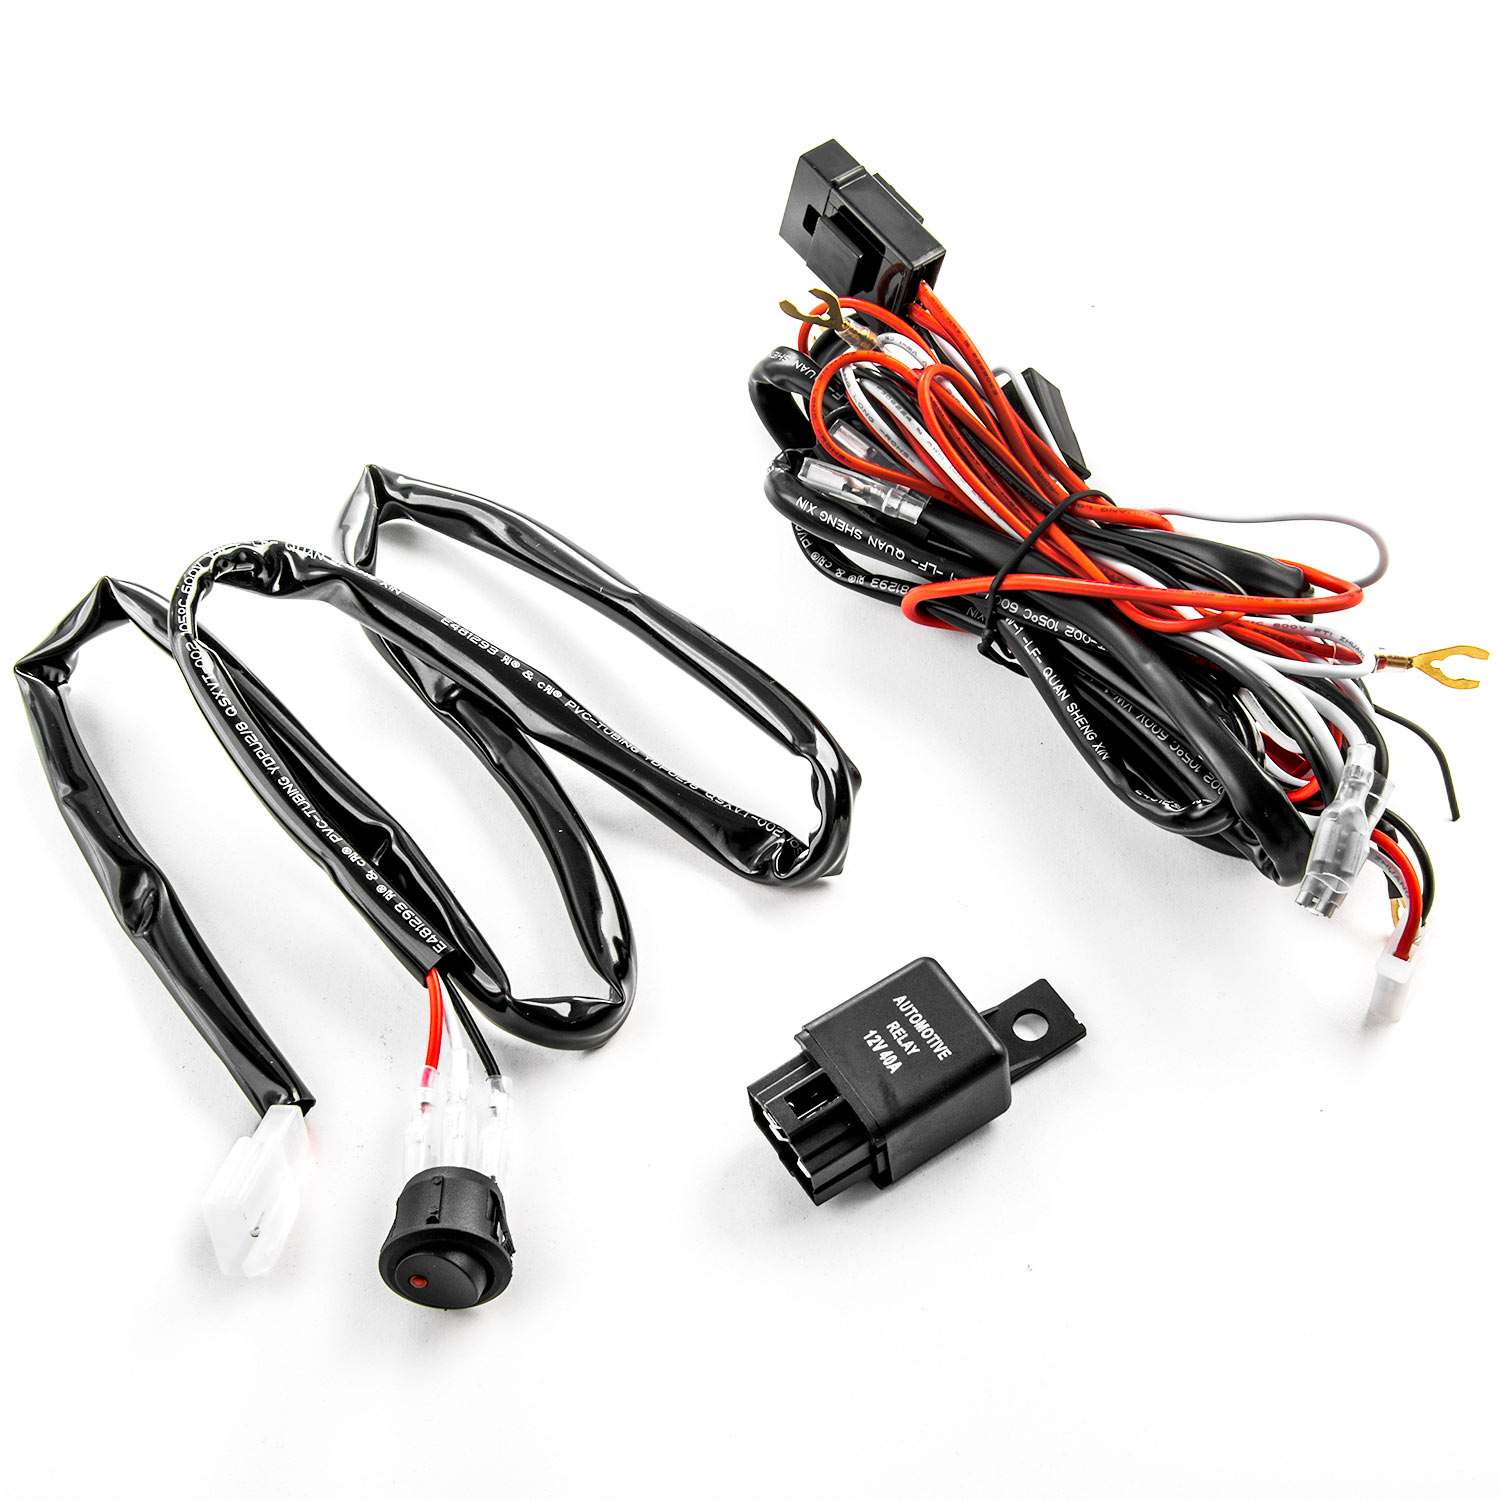 hight resolution of 40amp relay wiring kit 100watt driving light auxilliary off road 4x4 40amp relay wiring kit 100watt driving light auxilliary off road 4x4